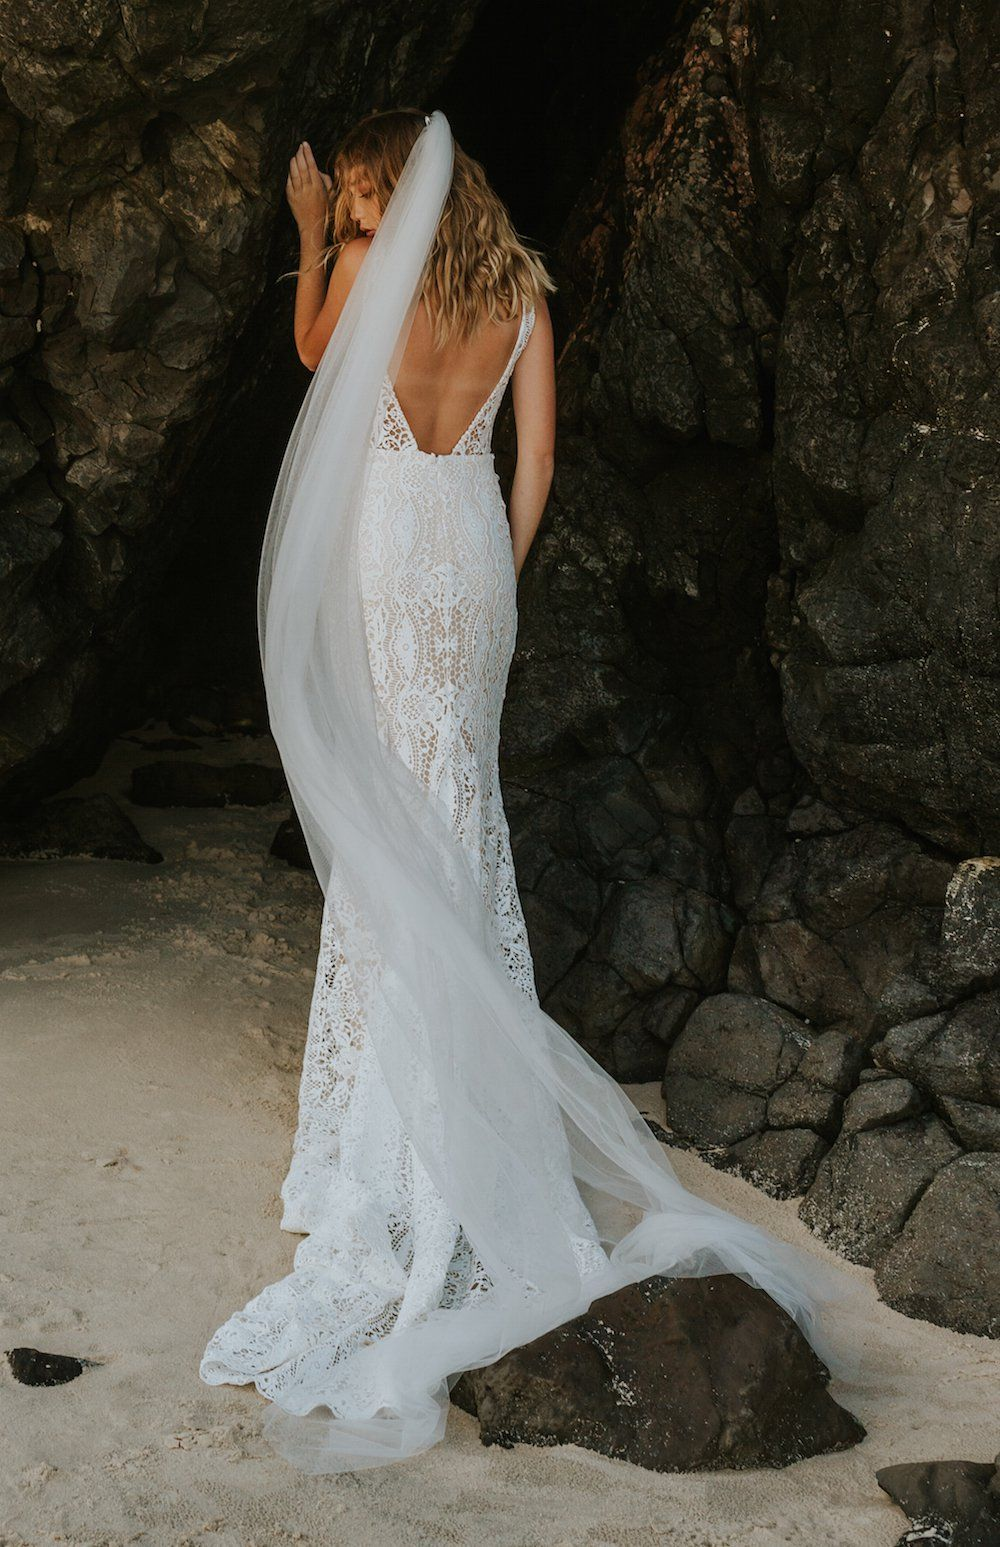 Nature wedding dress  NEW GOWNS FOR GODDESS BY NATURE  wedding realwedding realbride